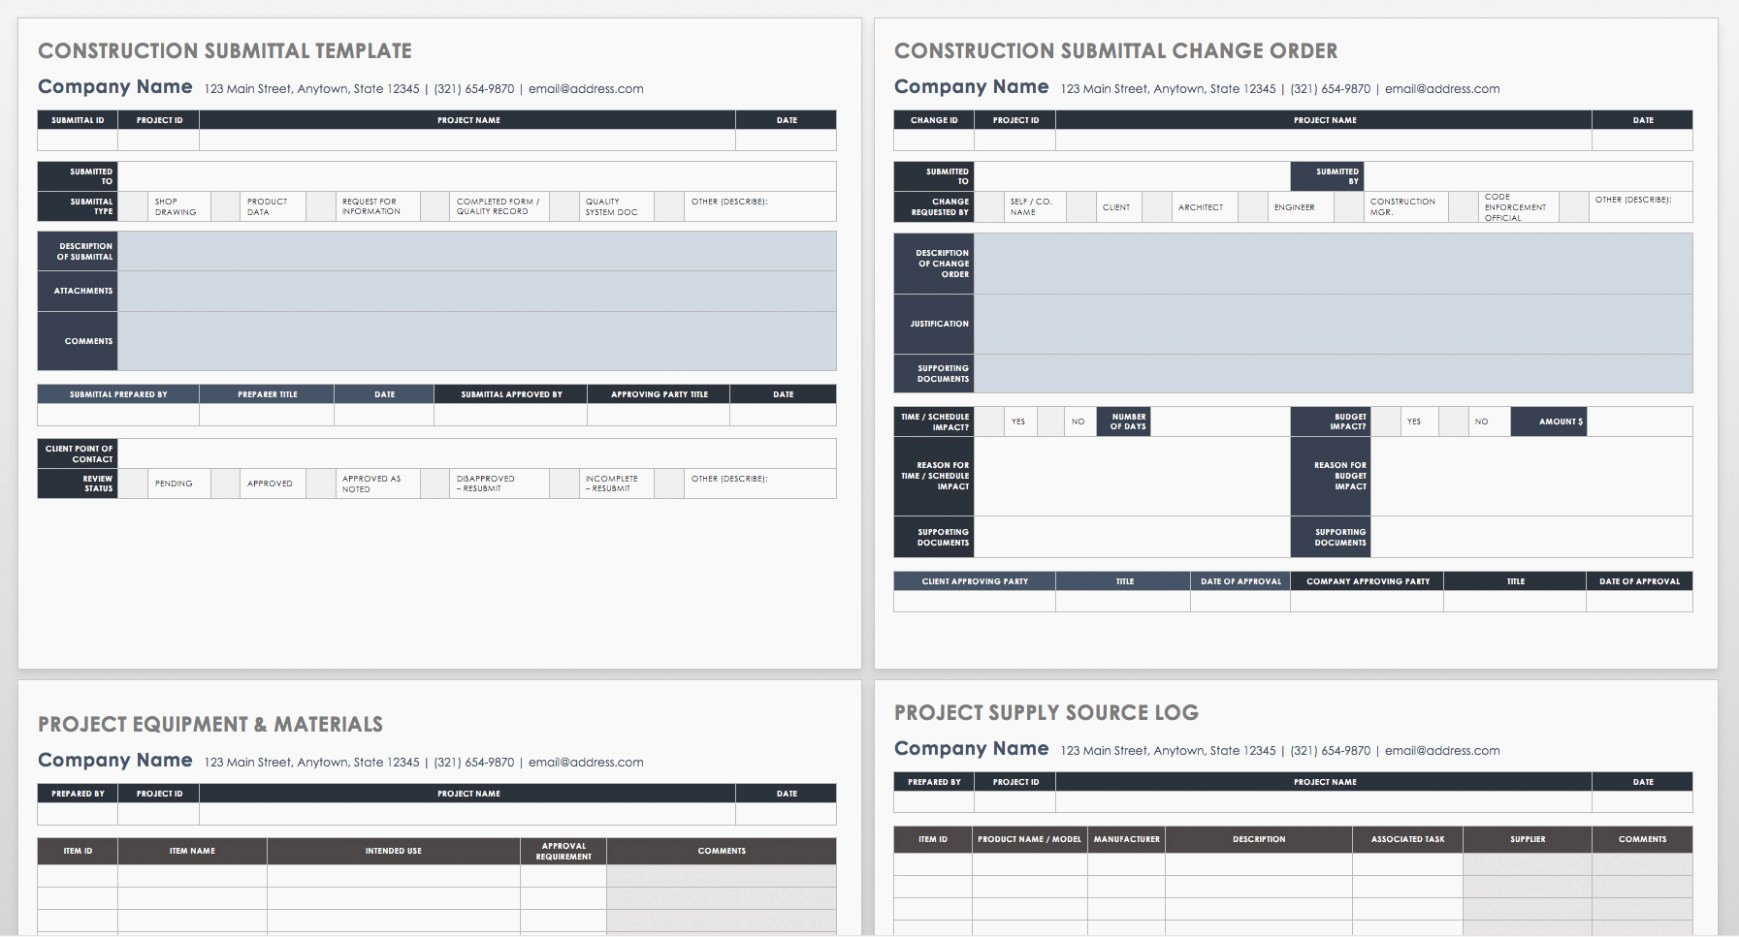 Construction Submittal Cover Sheet Template Best Of Five Shocking Facts About